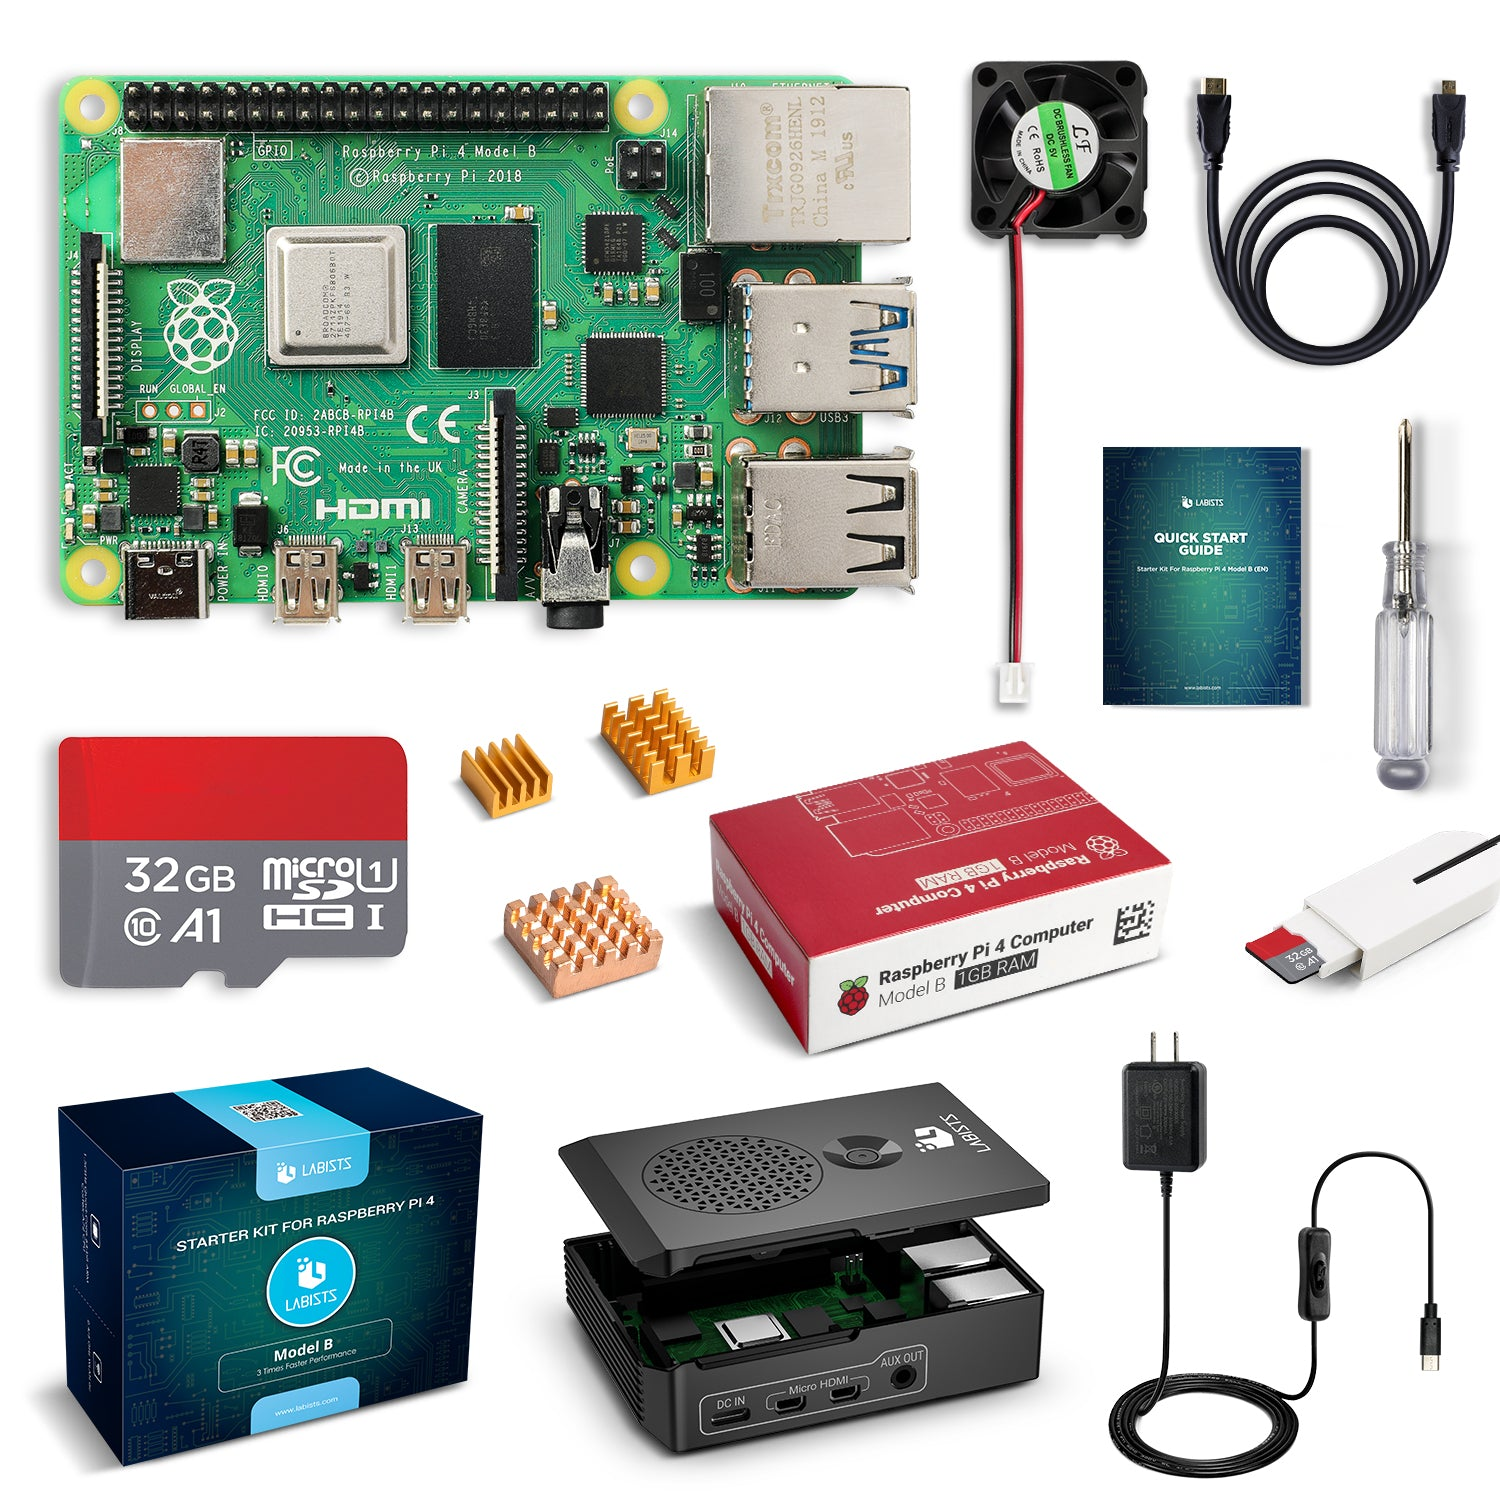 LABISTS Raspberry Pi 4 1GB RAM Board + 32GB Micro SD Card Complete Starter Kit (5.1V 3A Power Supply, Case, HDMI Cable, SD Card Reader, Fan, Heatsinks)